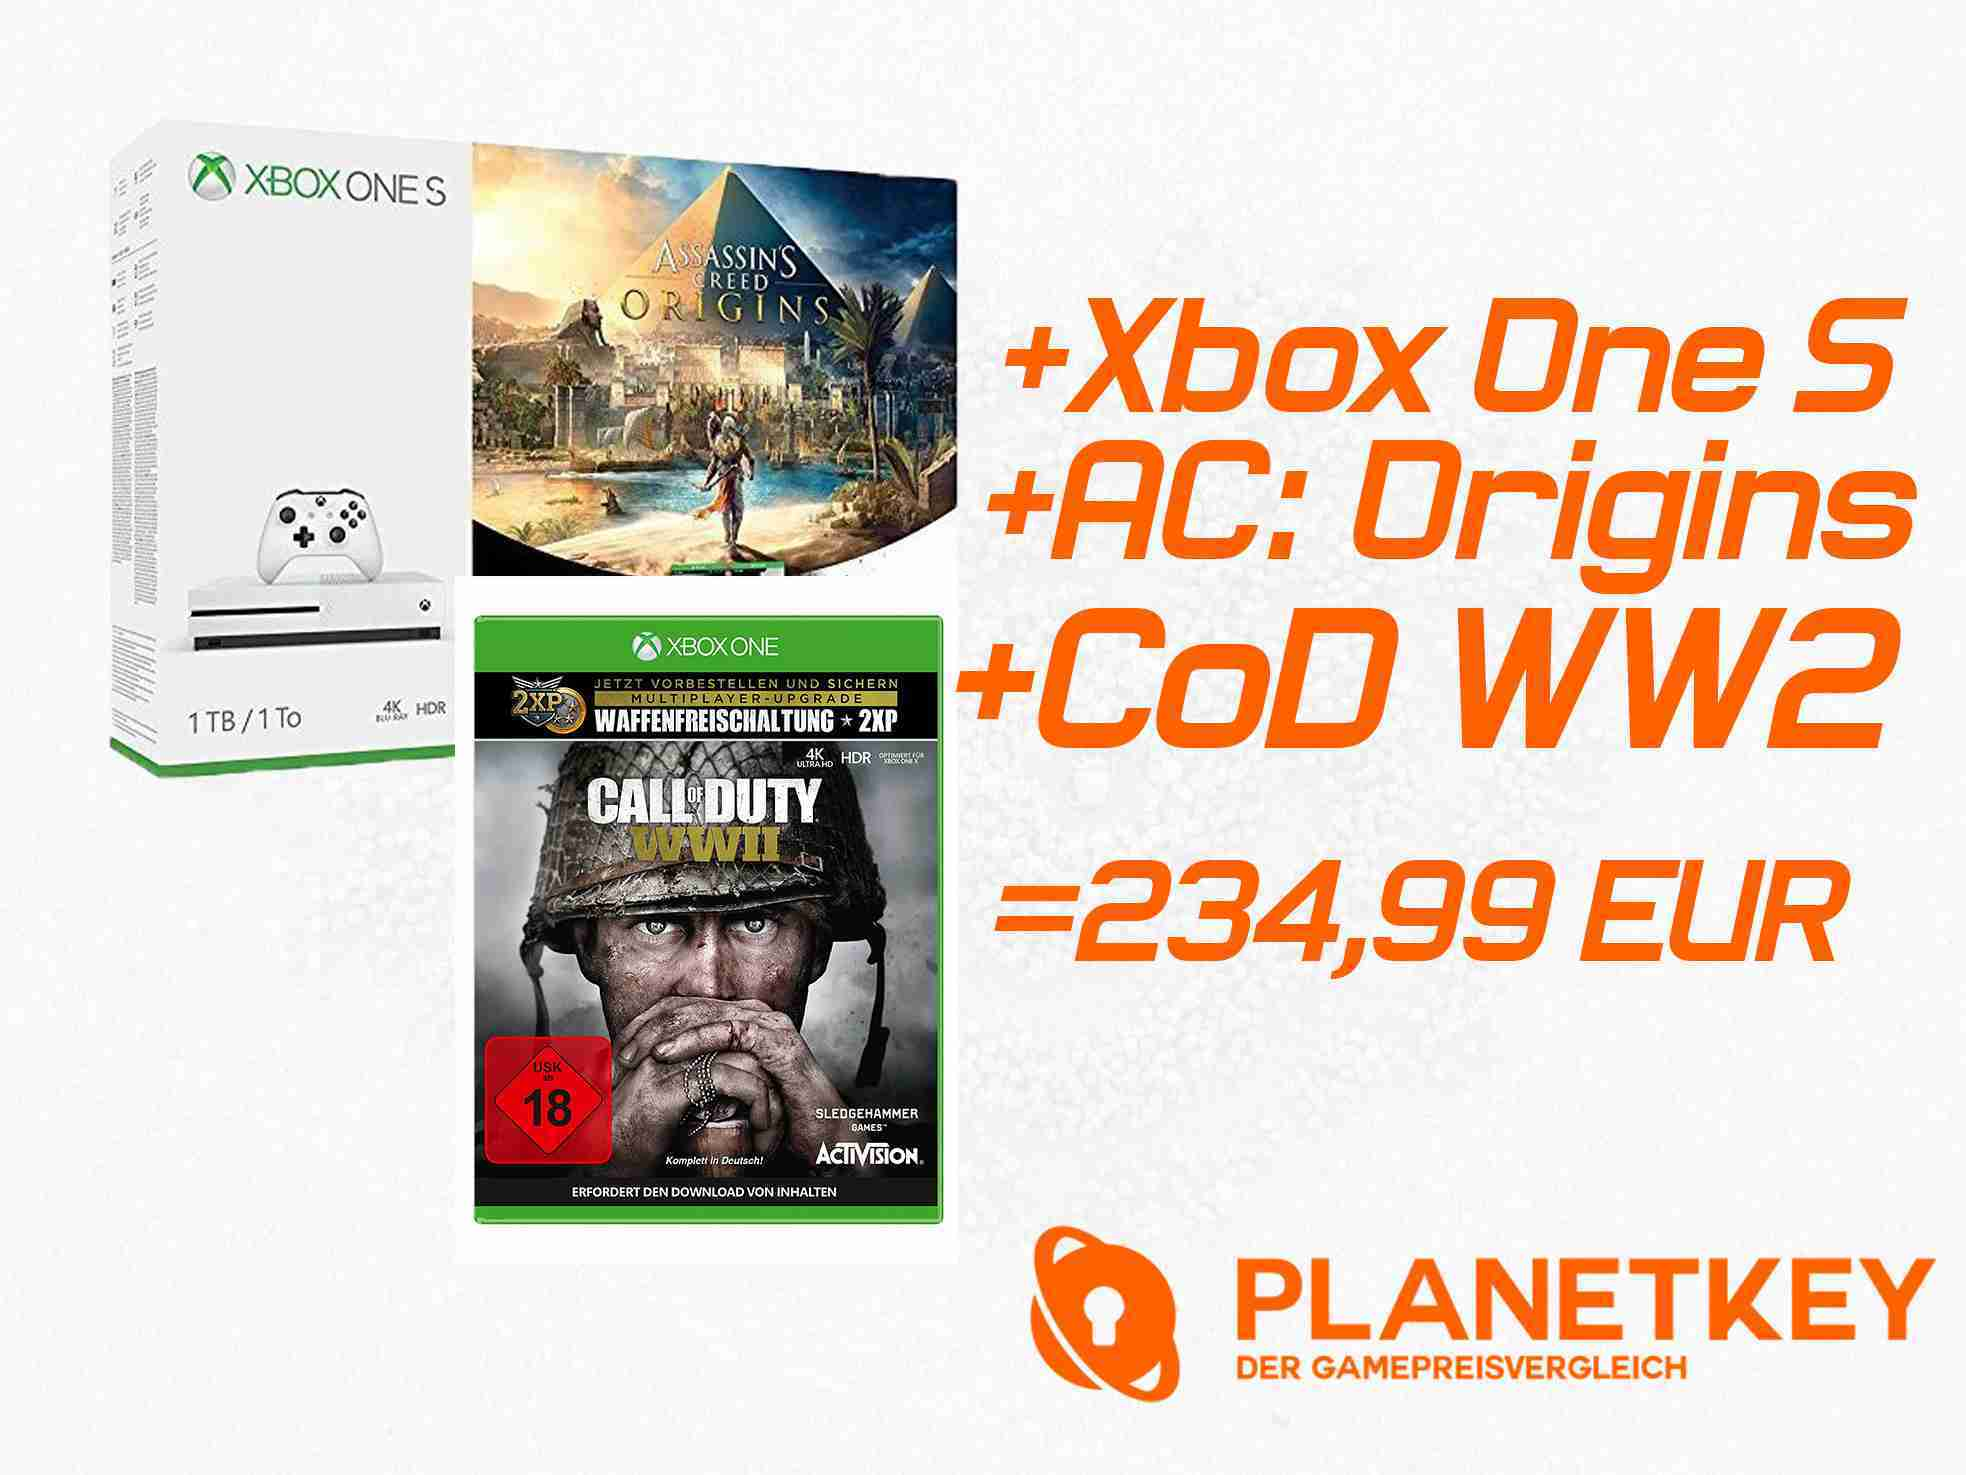 Xbox One S 500GB Konsole - Assassins's Creed Origins Bundle + Call of Duty: WWII für 234,99 EUR inkl. VSK